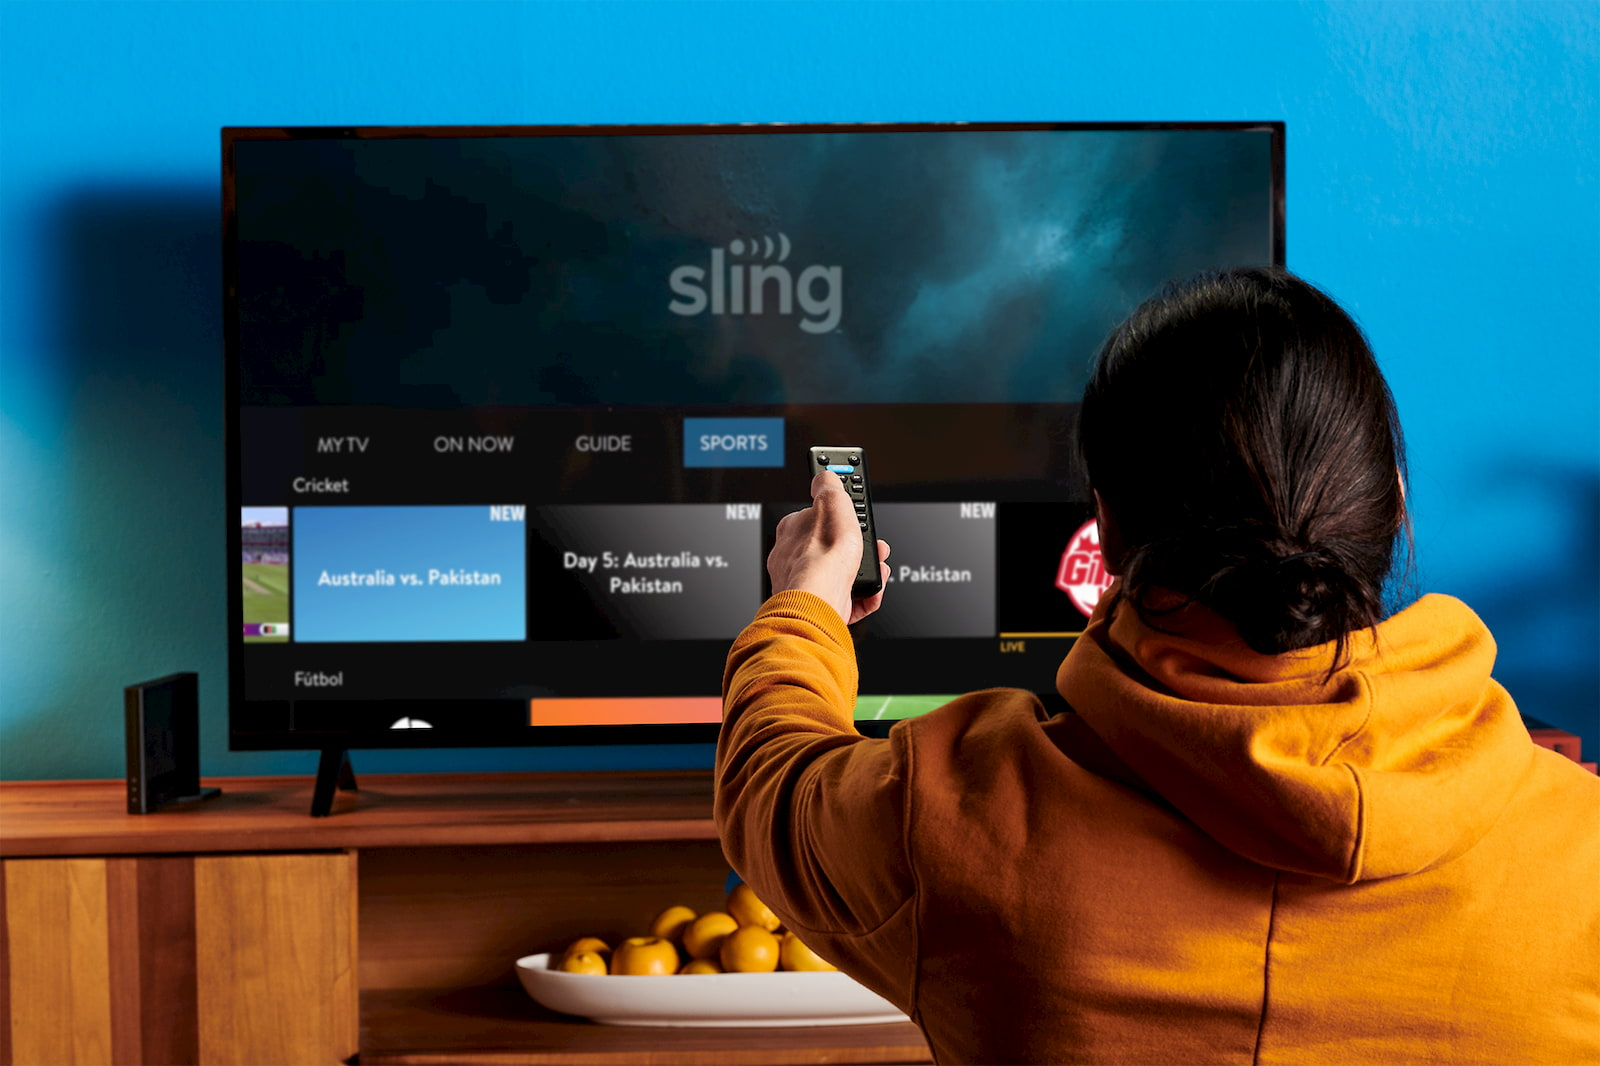 Black Friday: Get Sling TV and score a 4K Android TV dongle with Chromecast Built-in